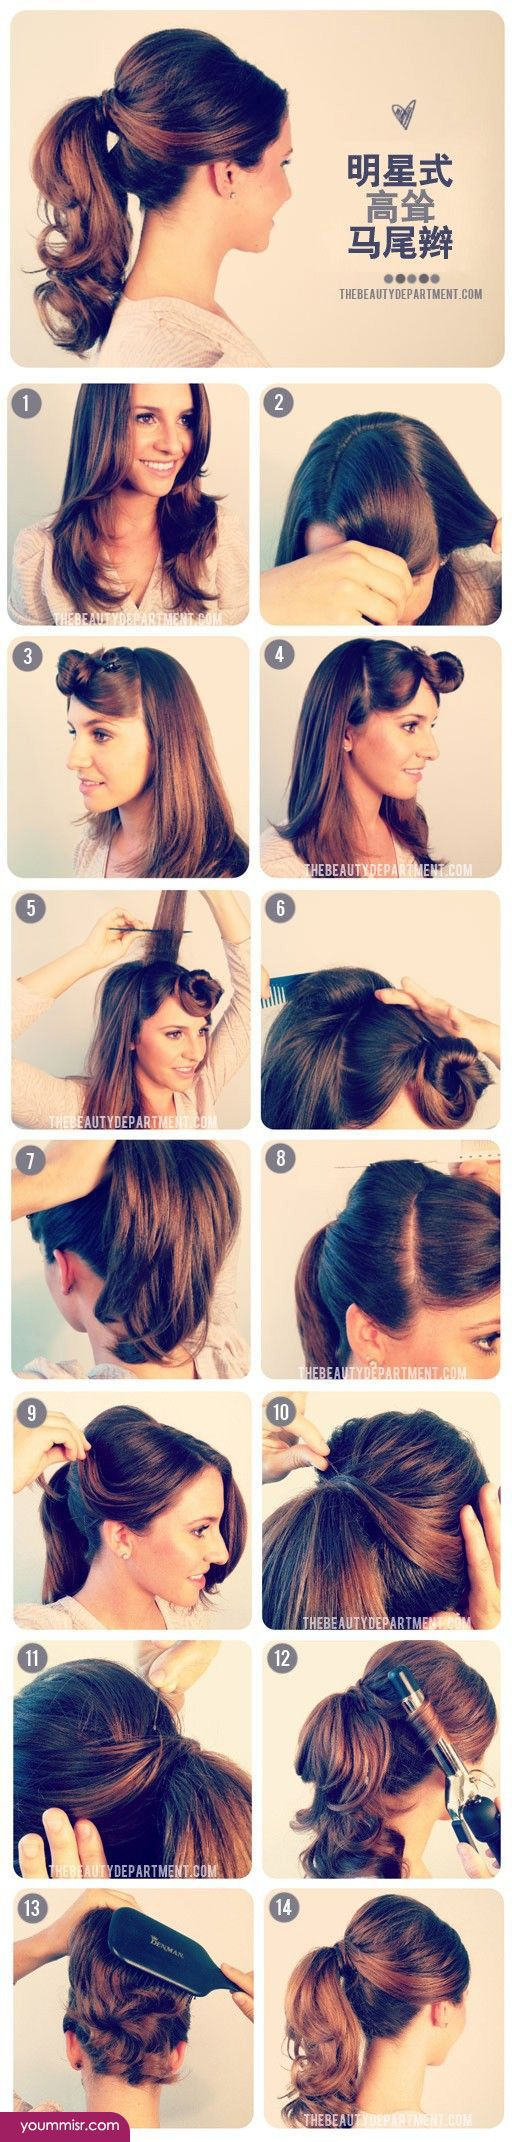 cute easy hairstyles for long hair 2015 2016 http://www.yoummisr.com/cute-easy-hairstyles-long-hair-2015-2016/